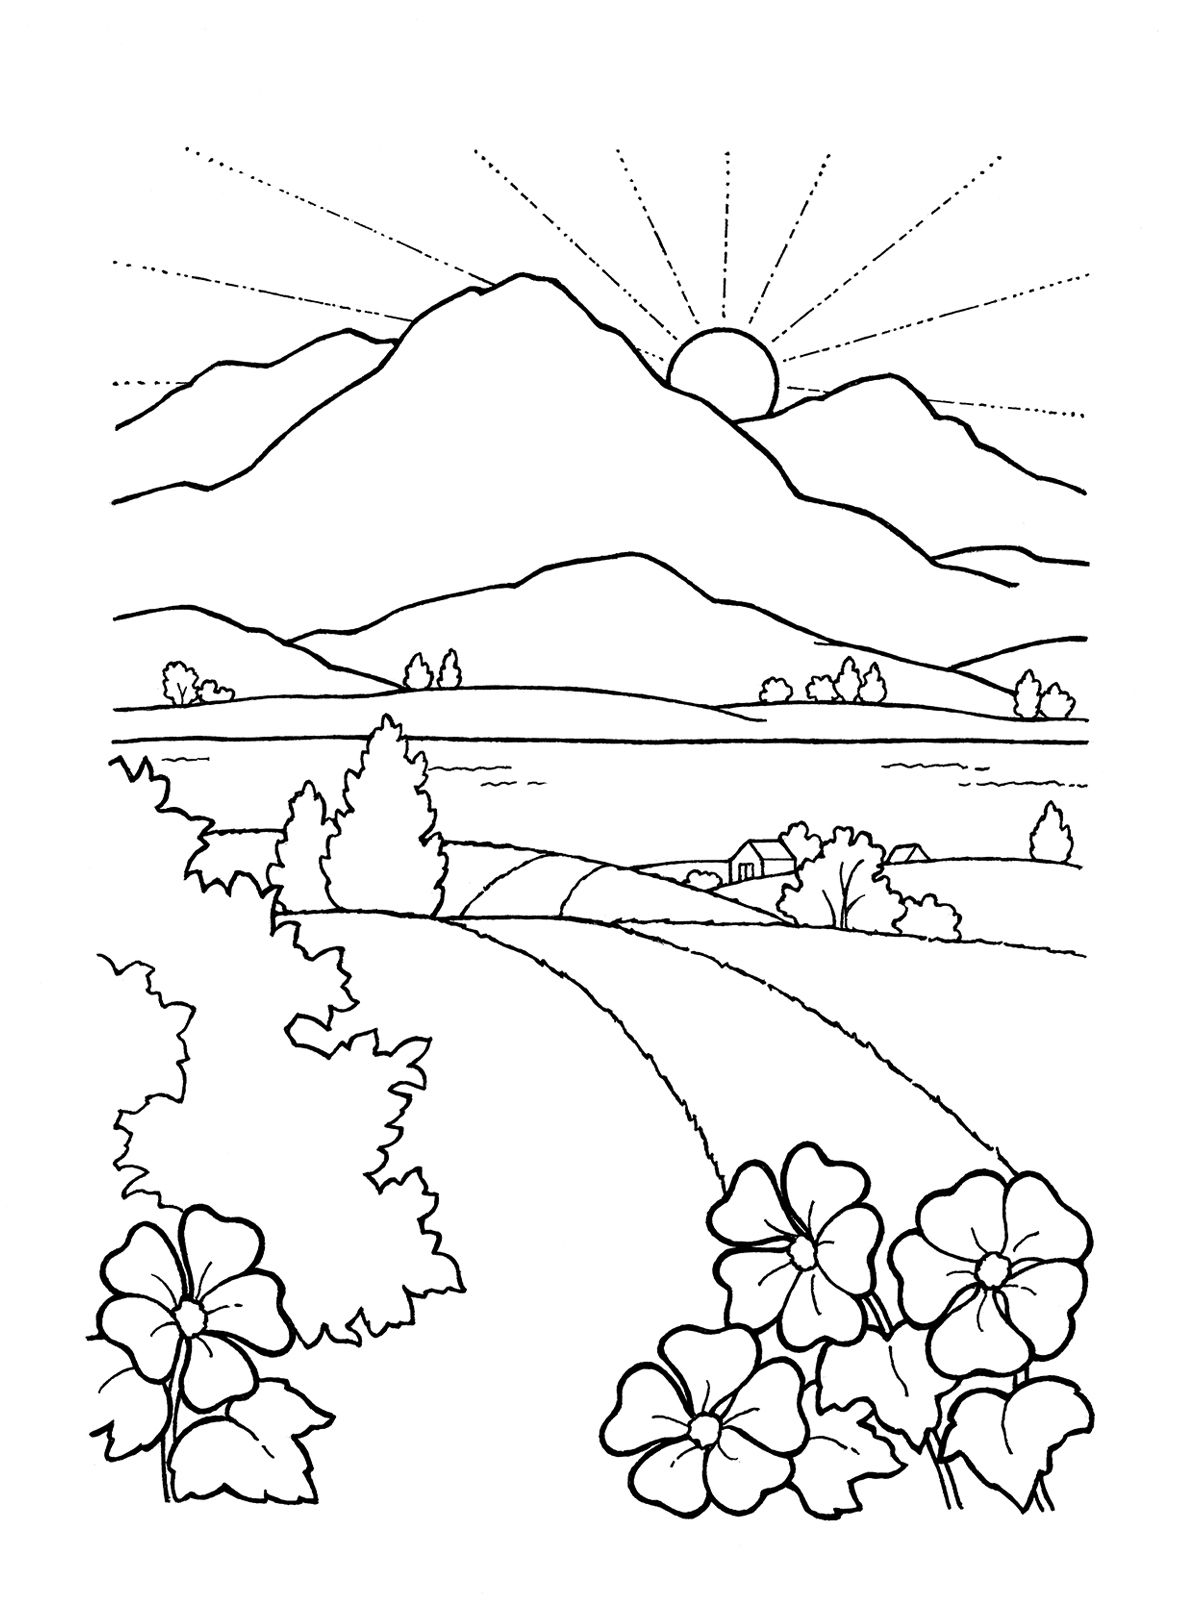 Related image Coloring pages nature, Scenery drawing for